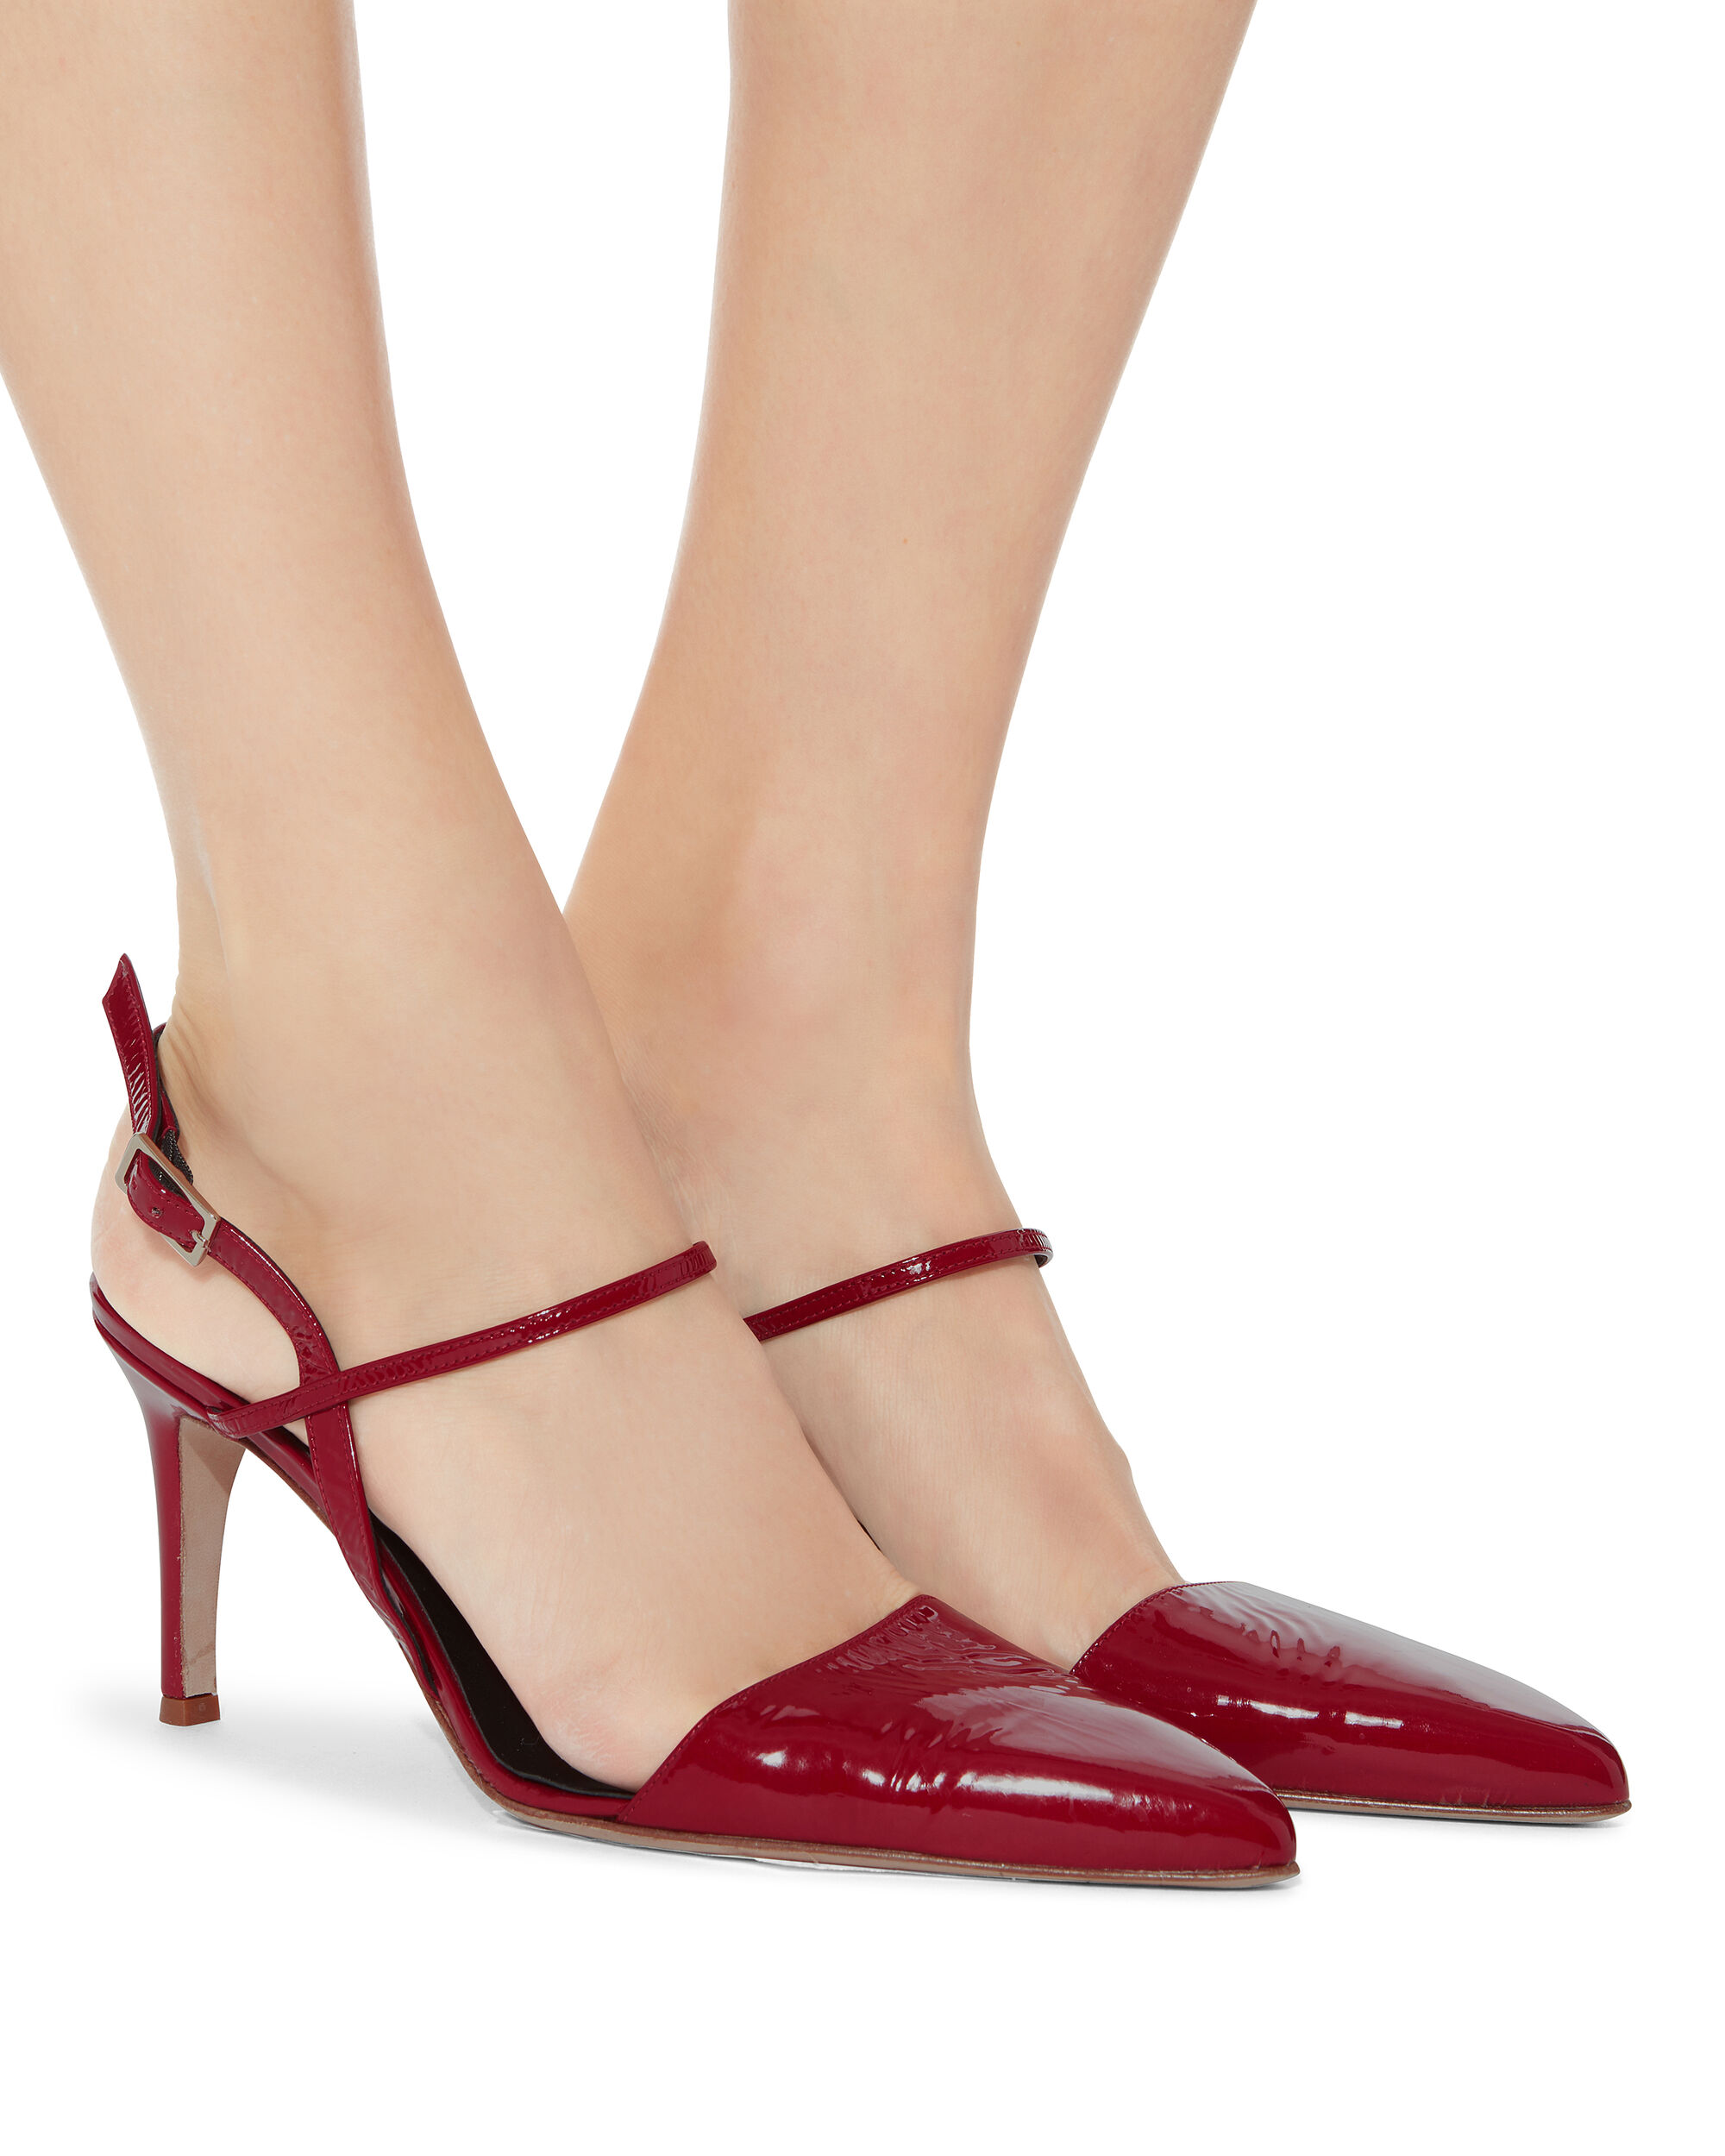 Eli Red Patent Leather Slingback Pumps, RED, hi-res